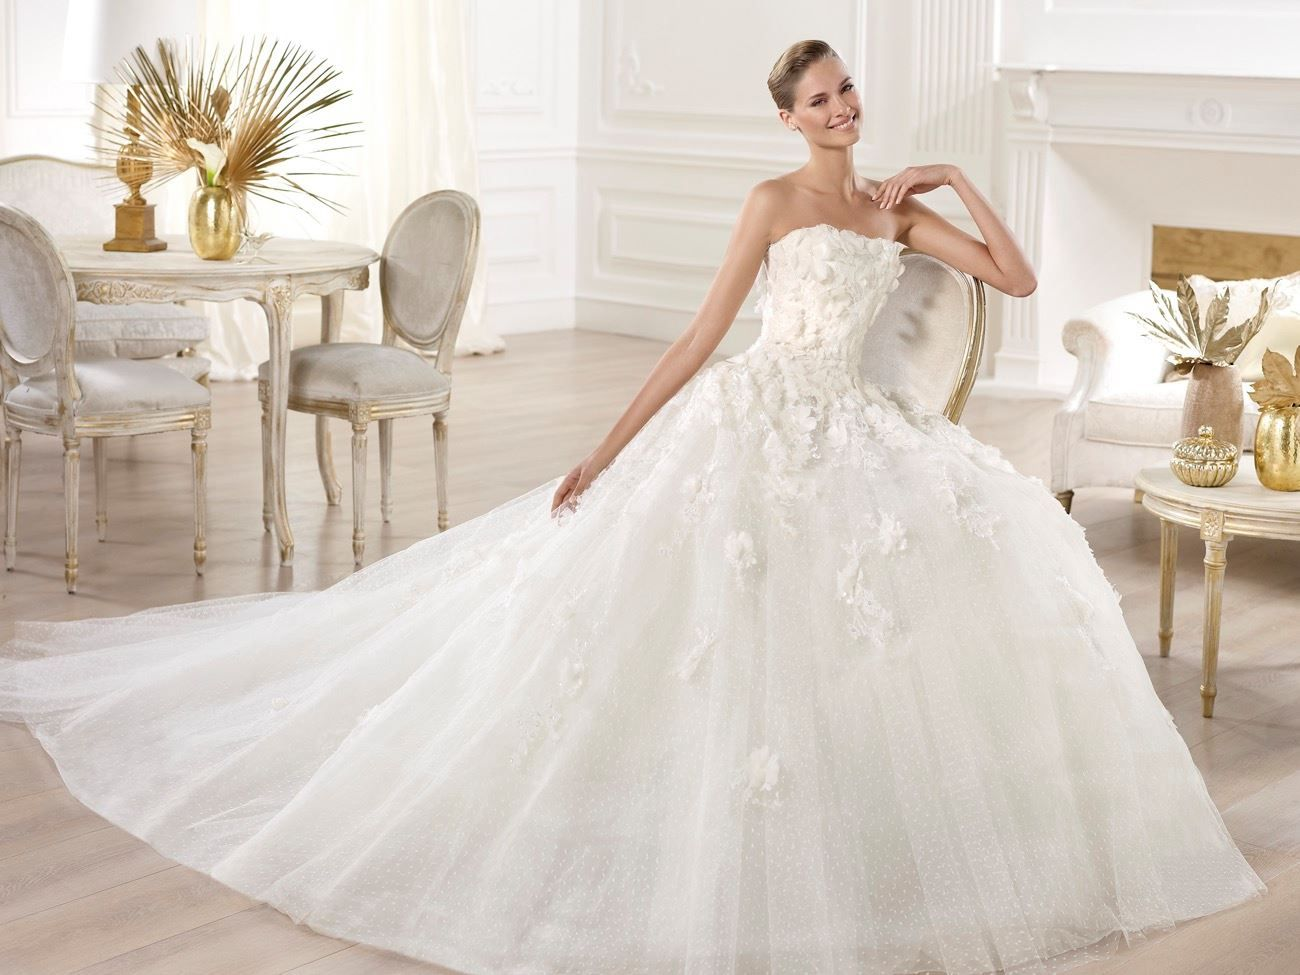 Elie by Elie Saab | Hong Kong - A fairytale princess wedding dress ...